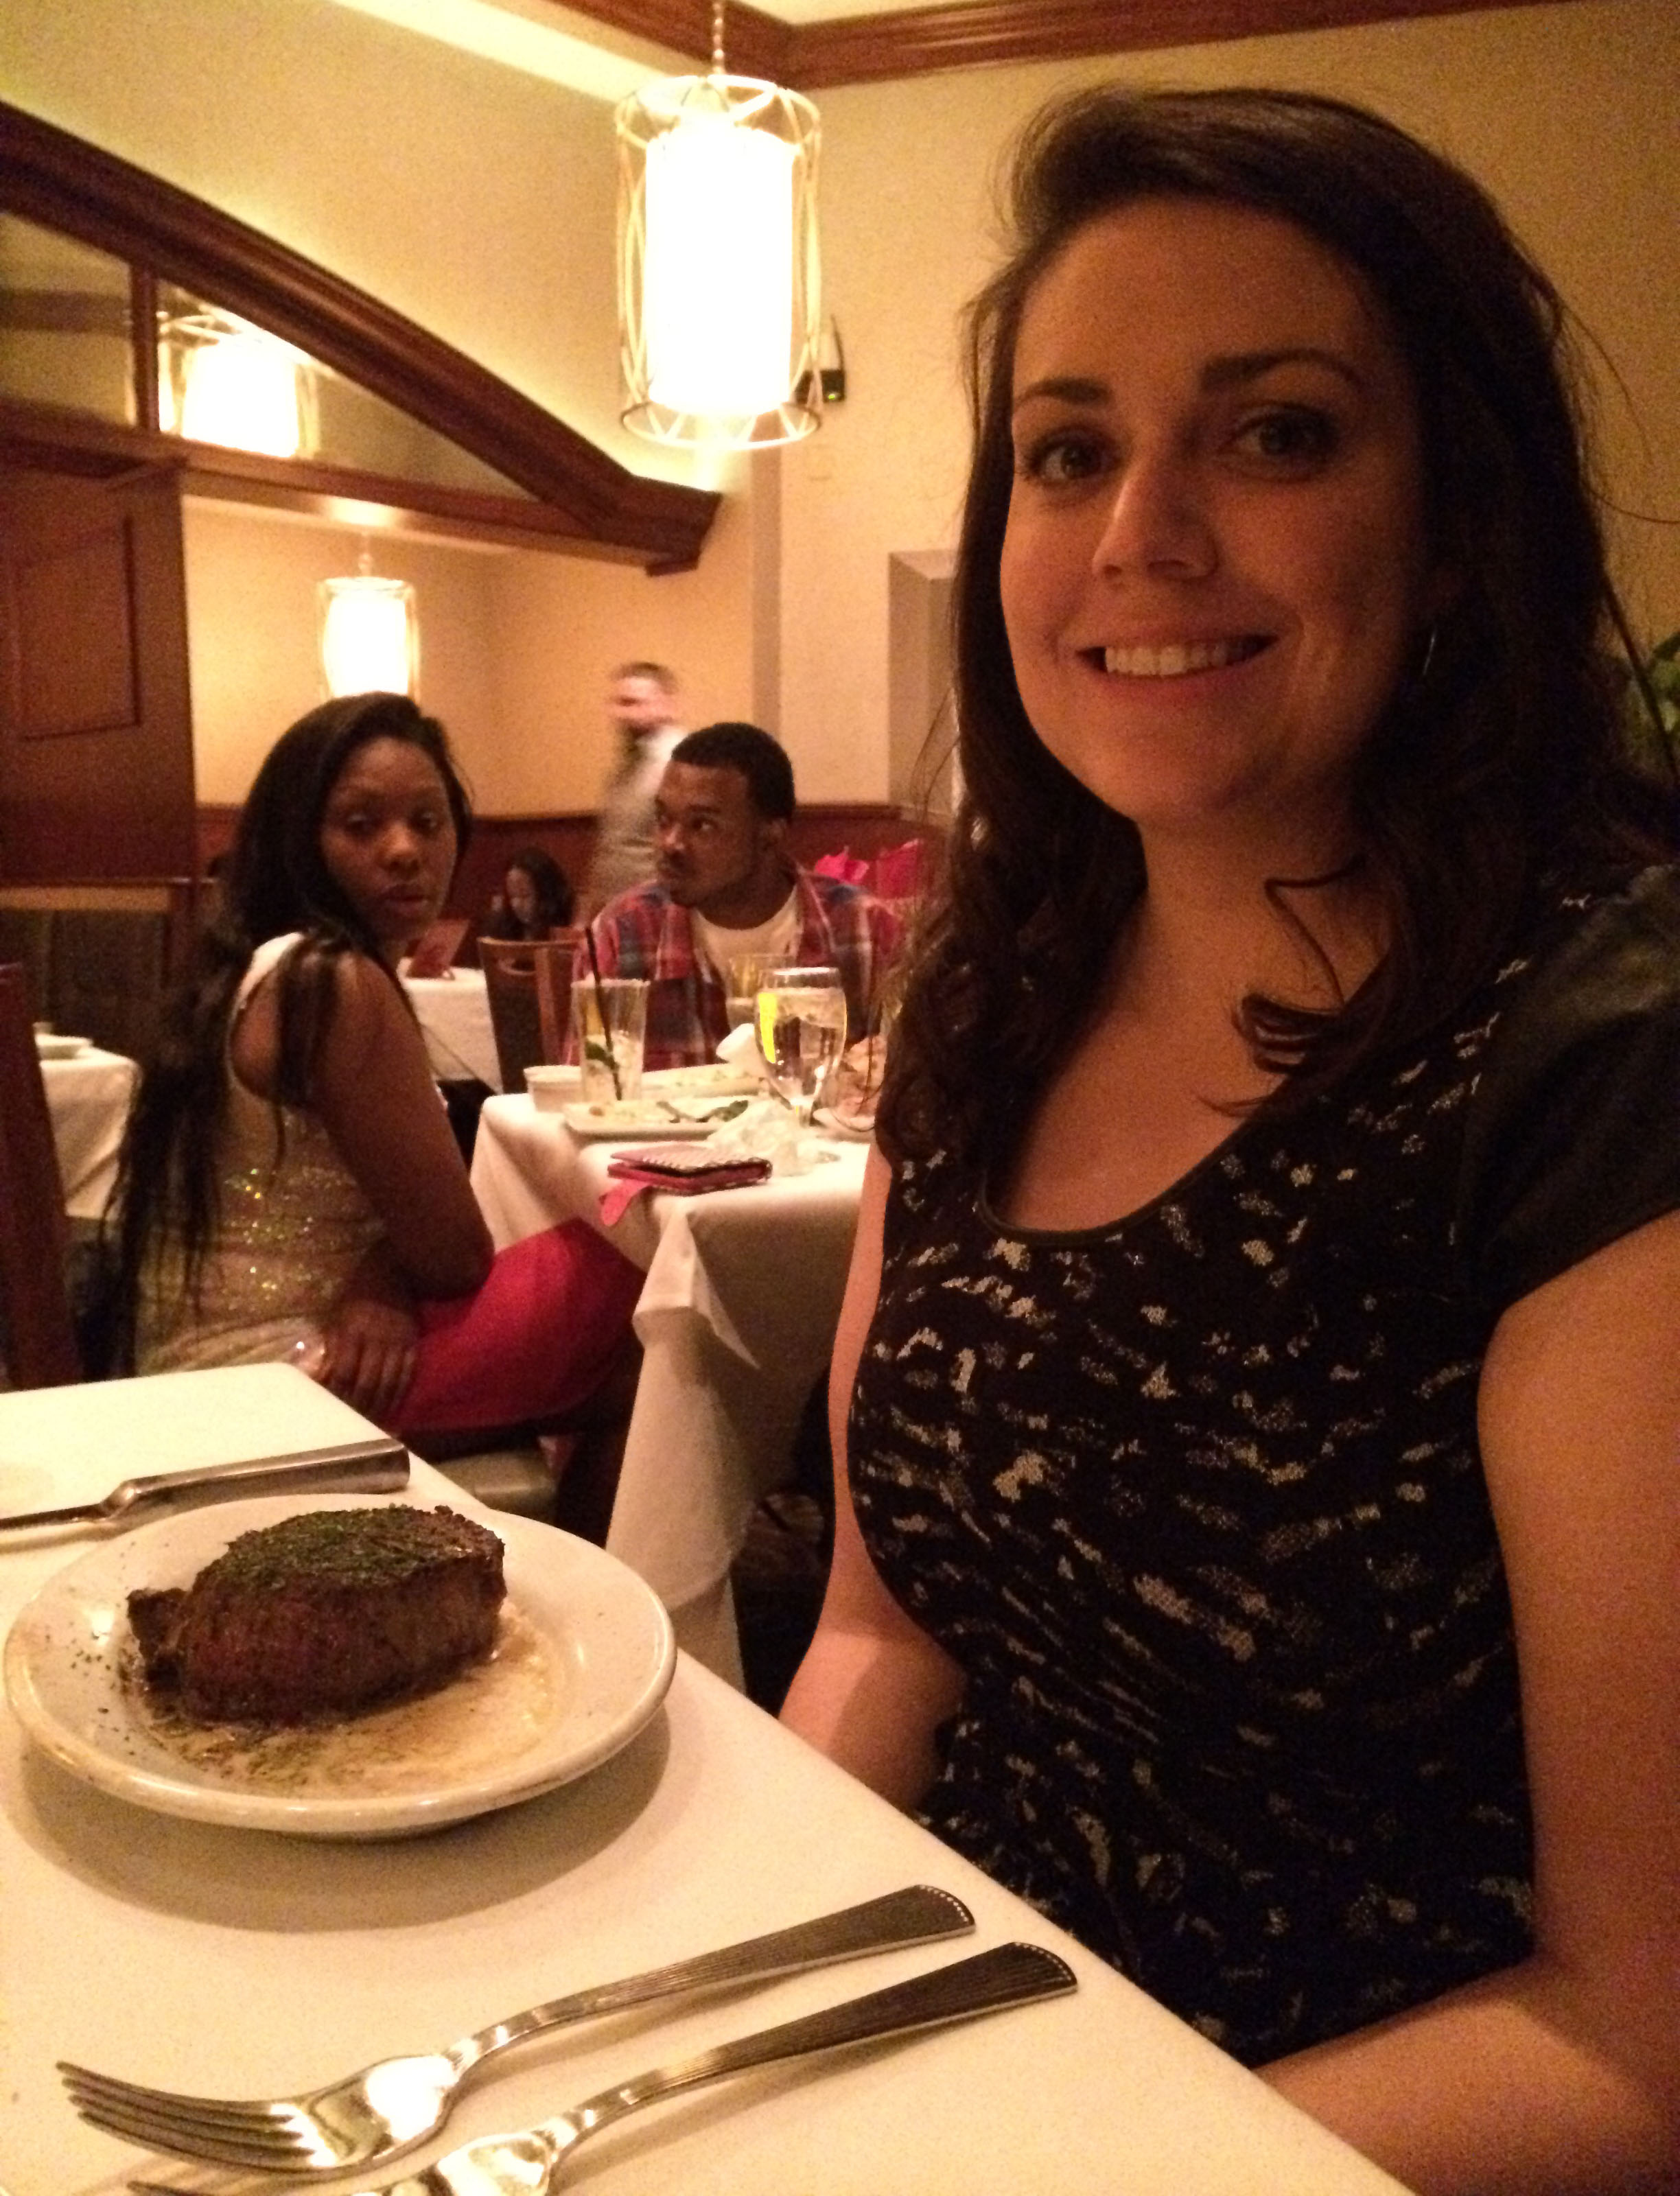 Sid with her steak. The girl who asked aloud why they didn't order the onion rings is in clear view.